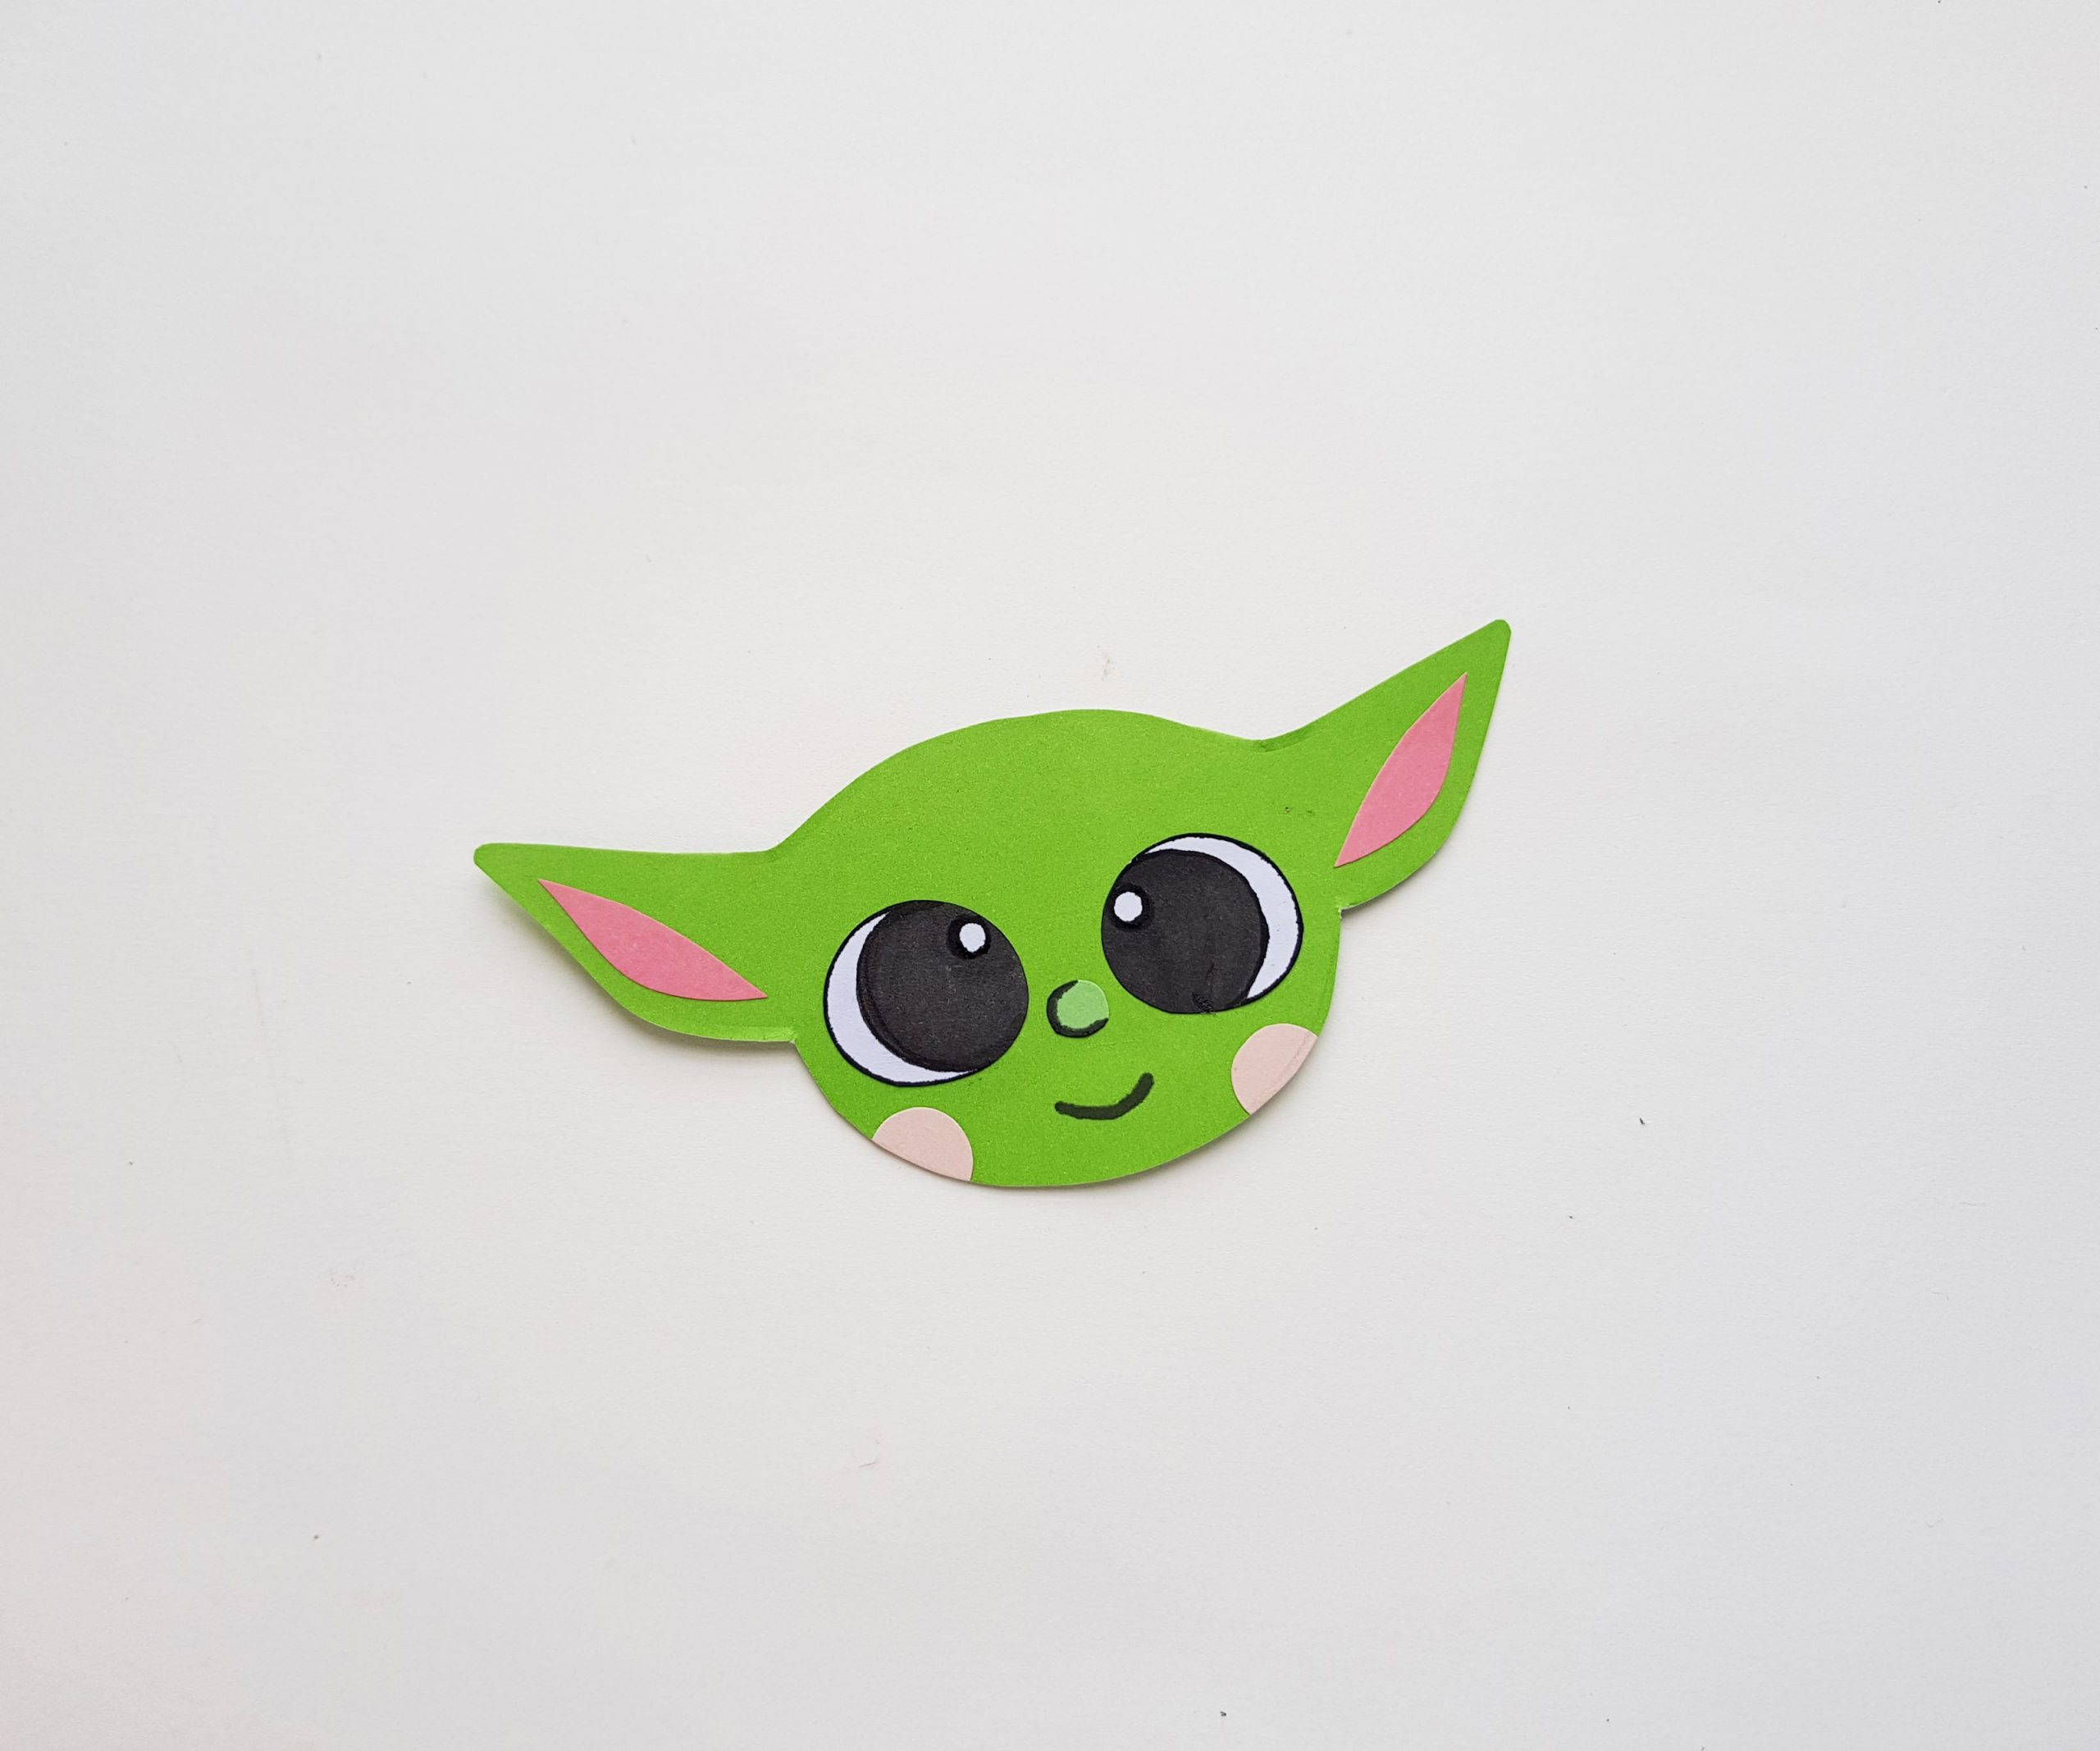 Baby yoda craft step by step craft with paper and scissors